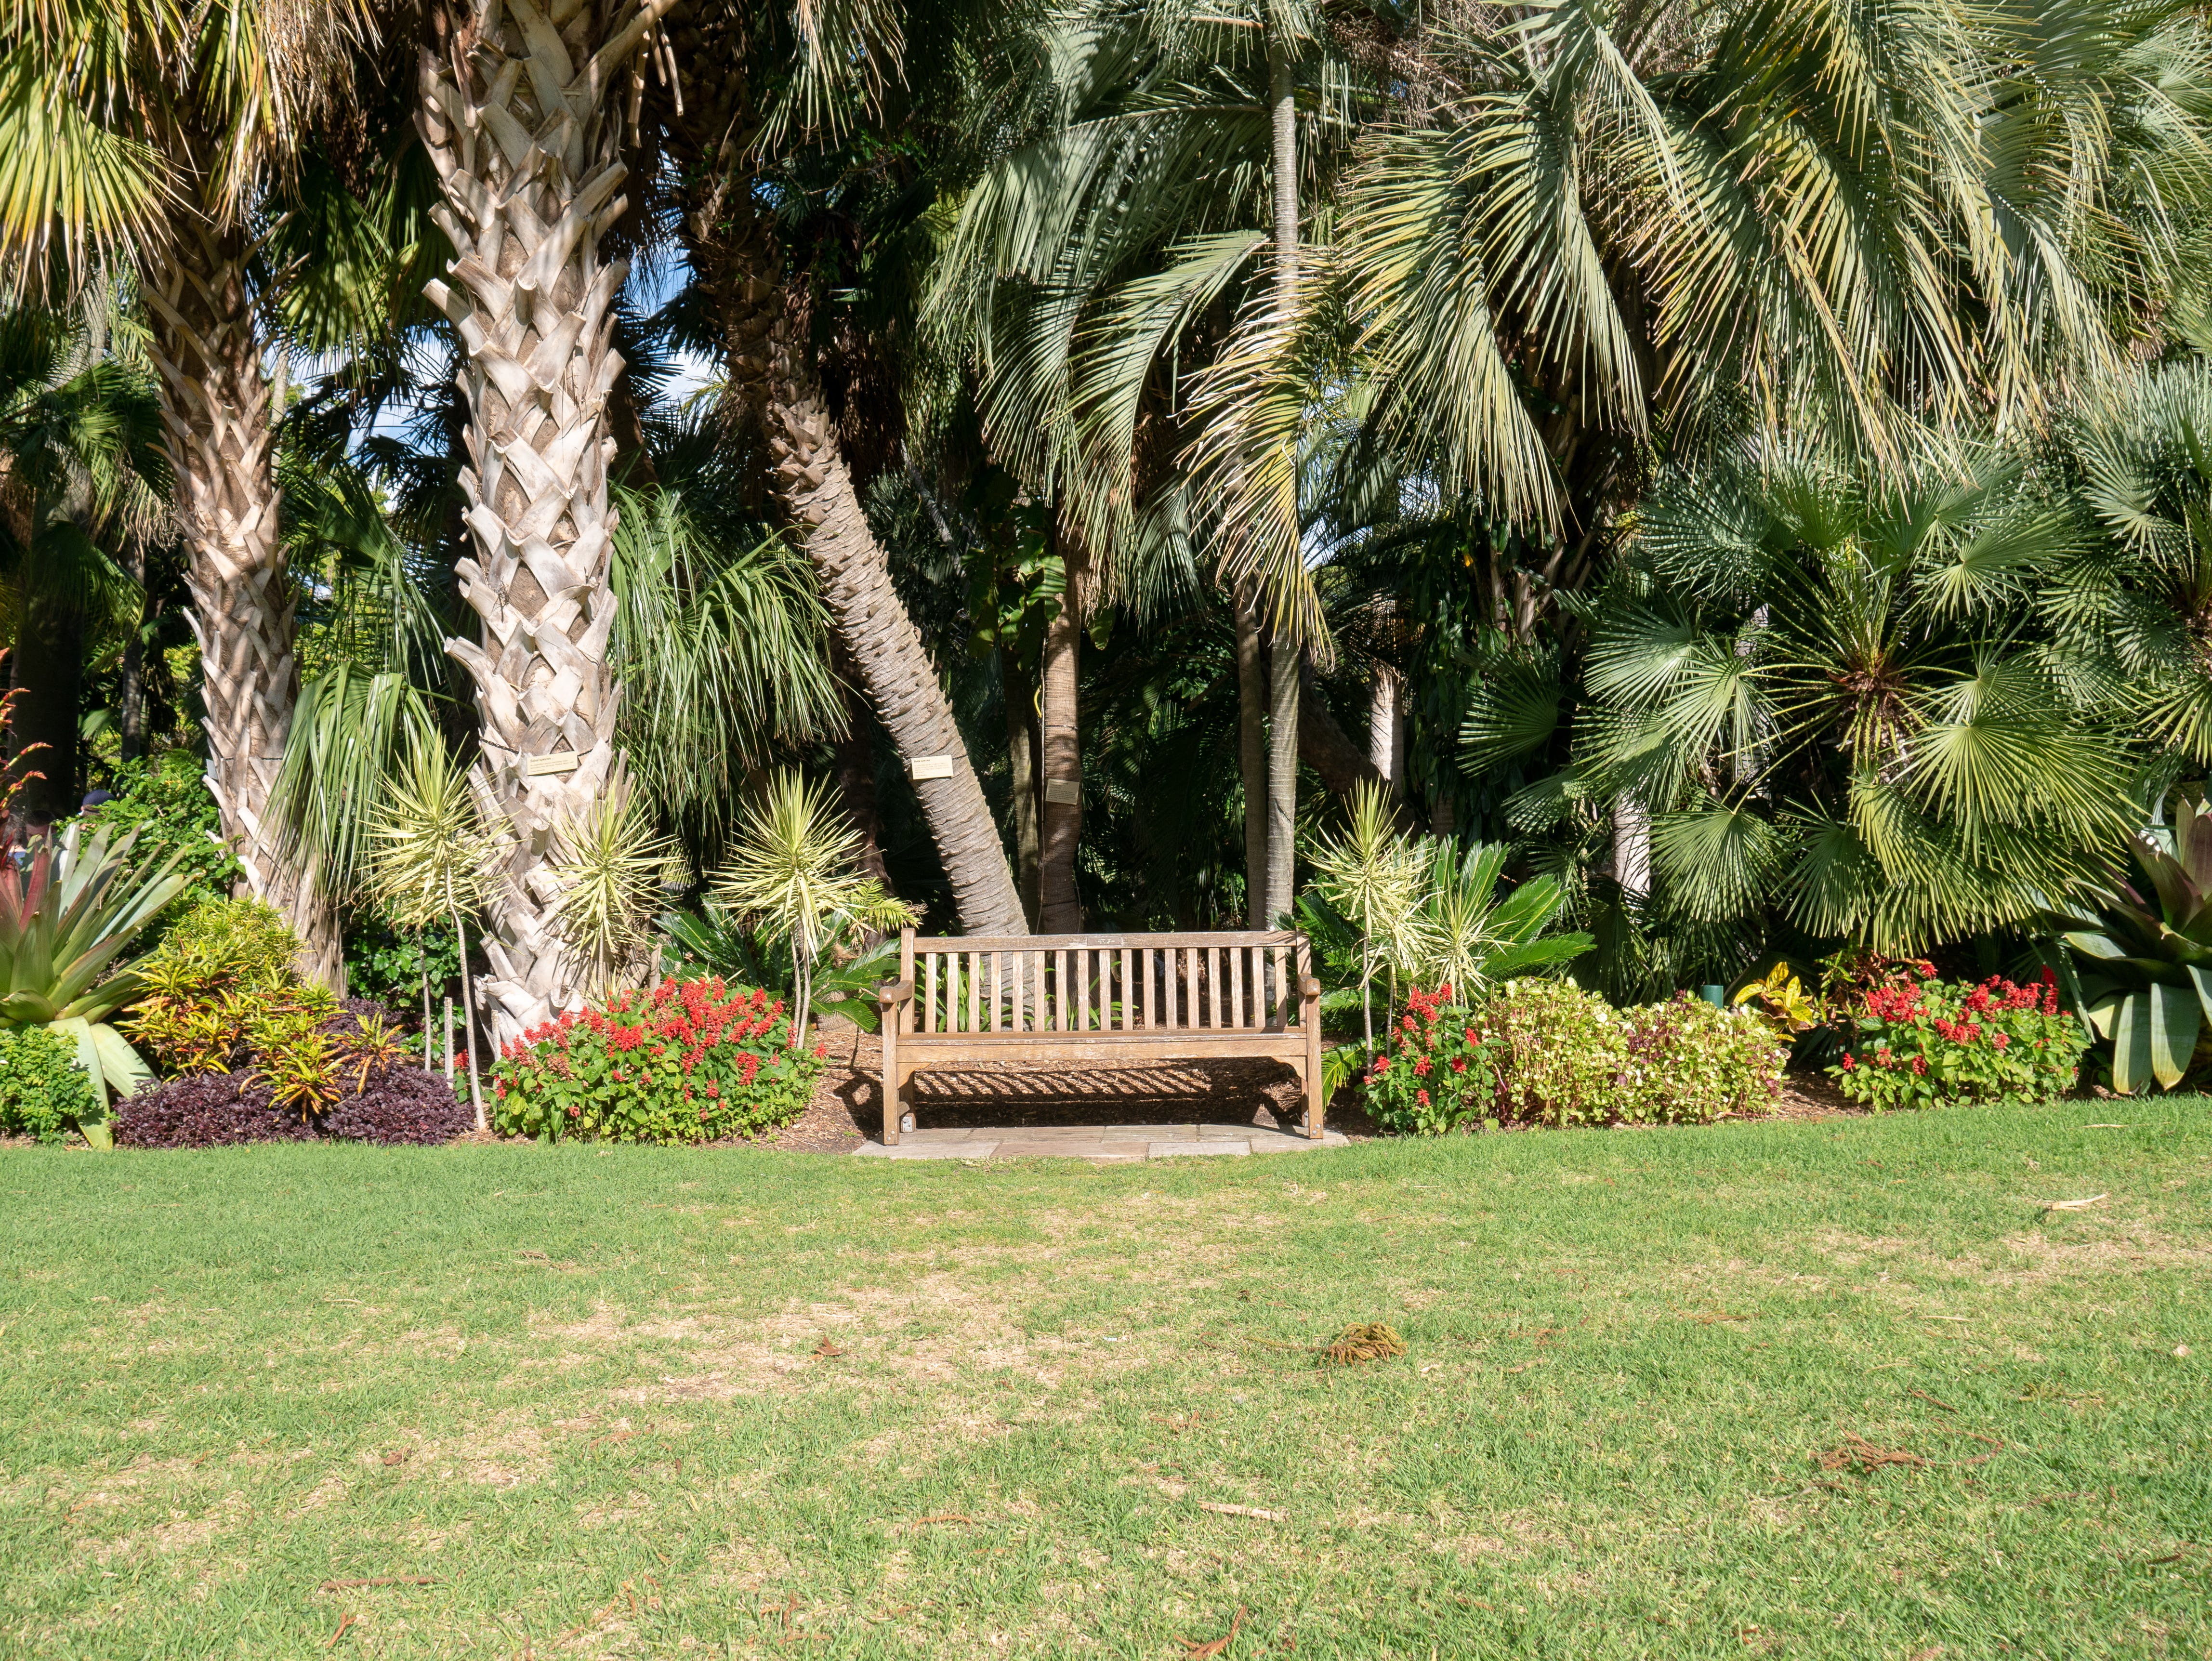 Empty Brown Wooden Bench in a Park